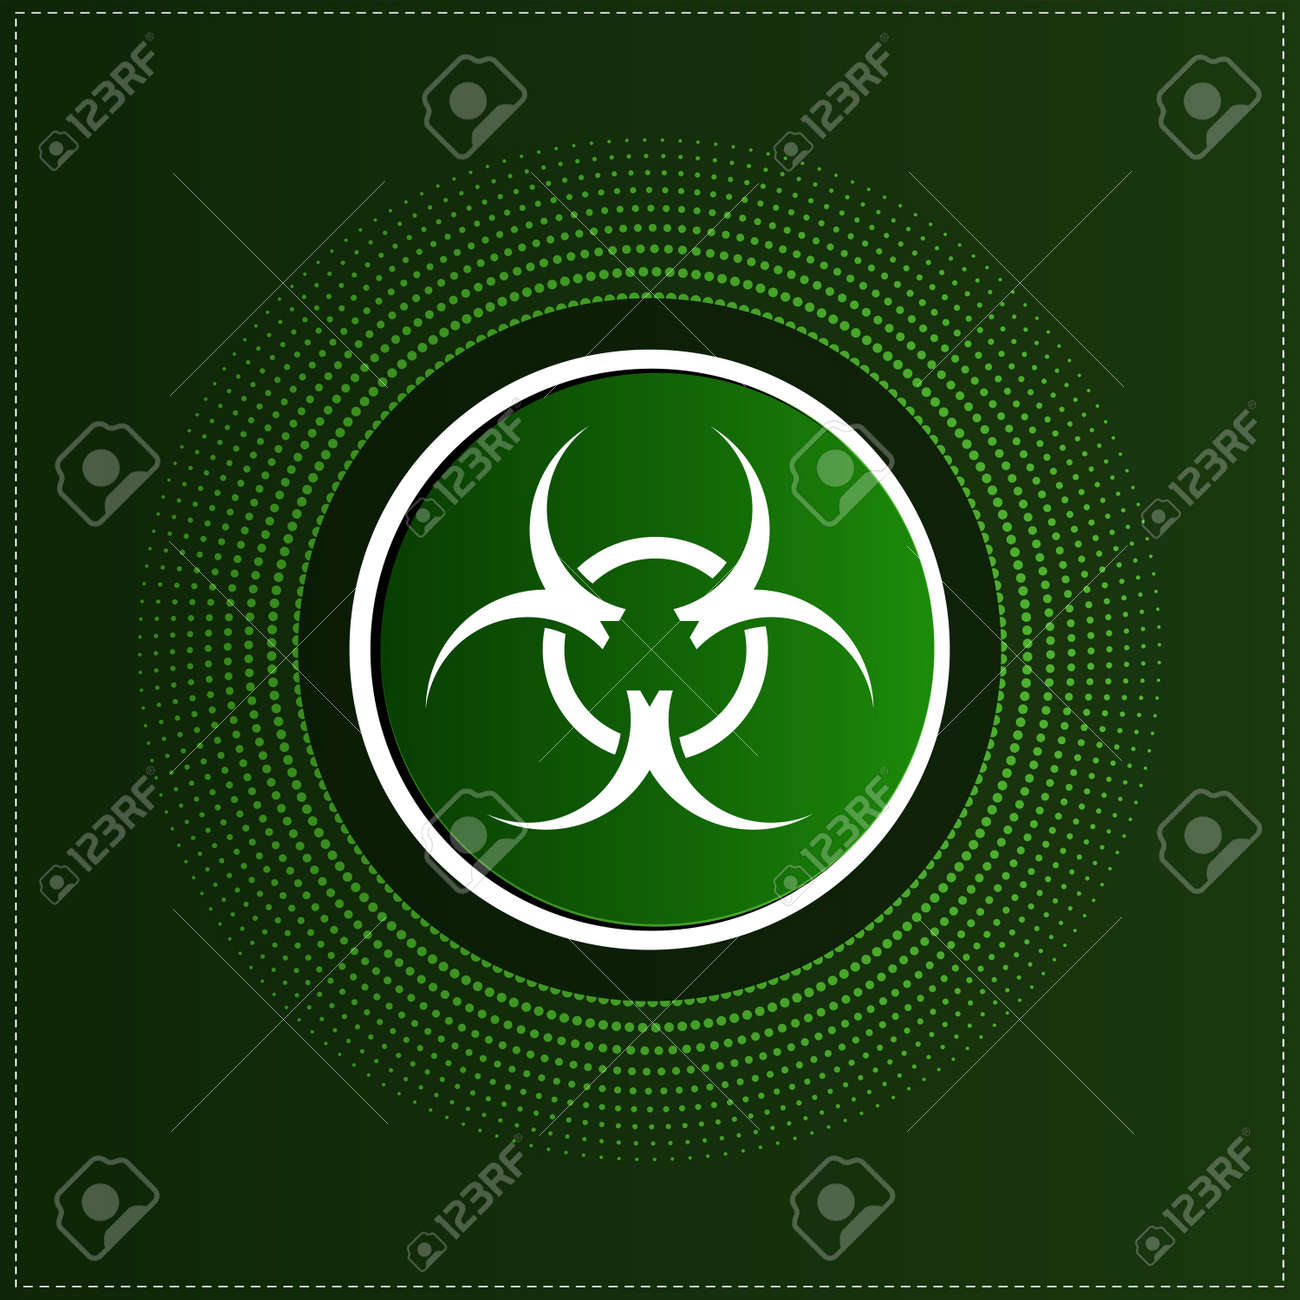 Button With Biohazard Symbol Royalty Free Cliparts Vectors And